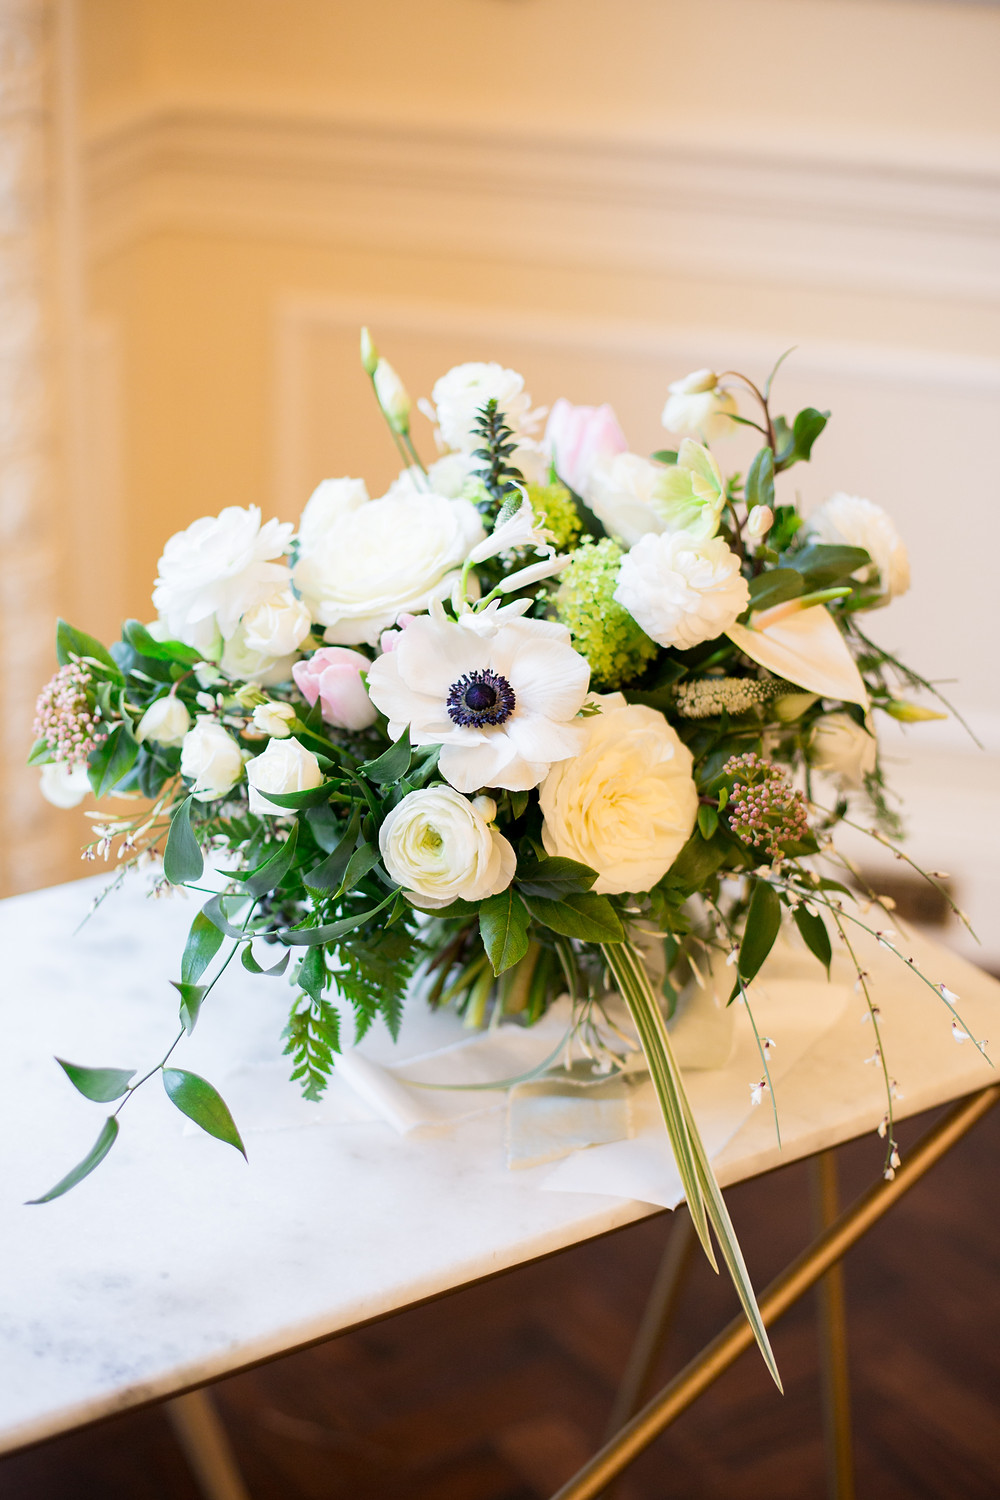 Bridal bouquet, white and green with pops of pink